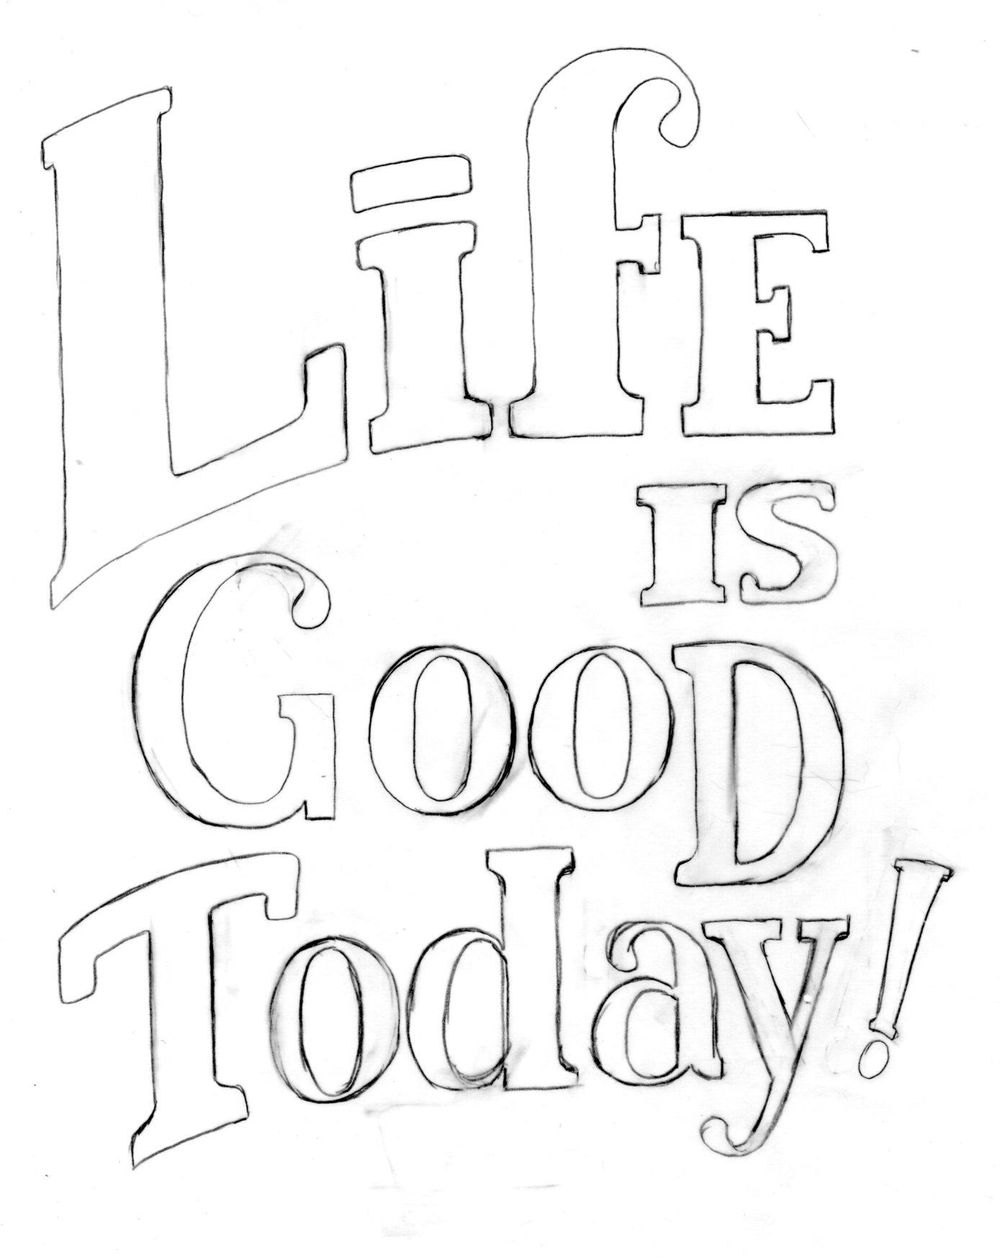 Life is Good Today - image 4 - student project